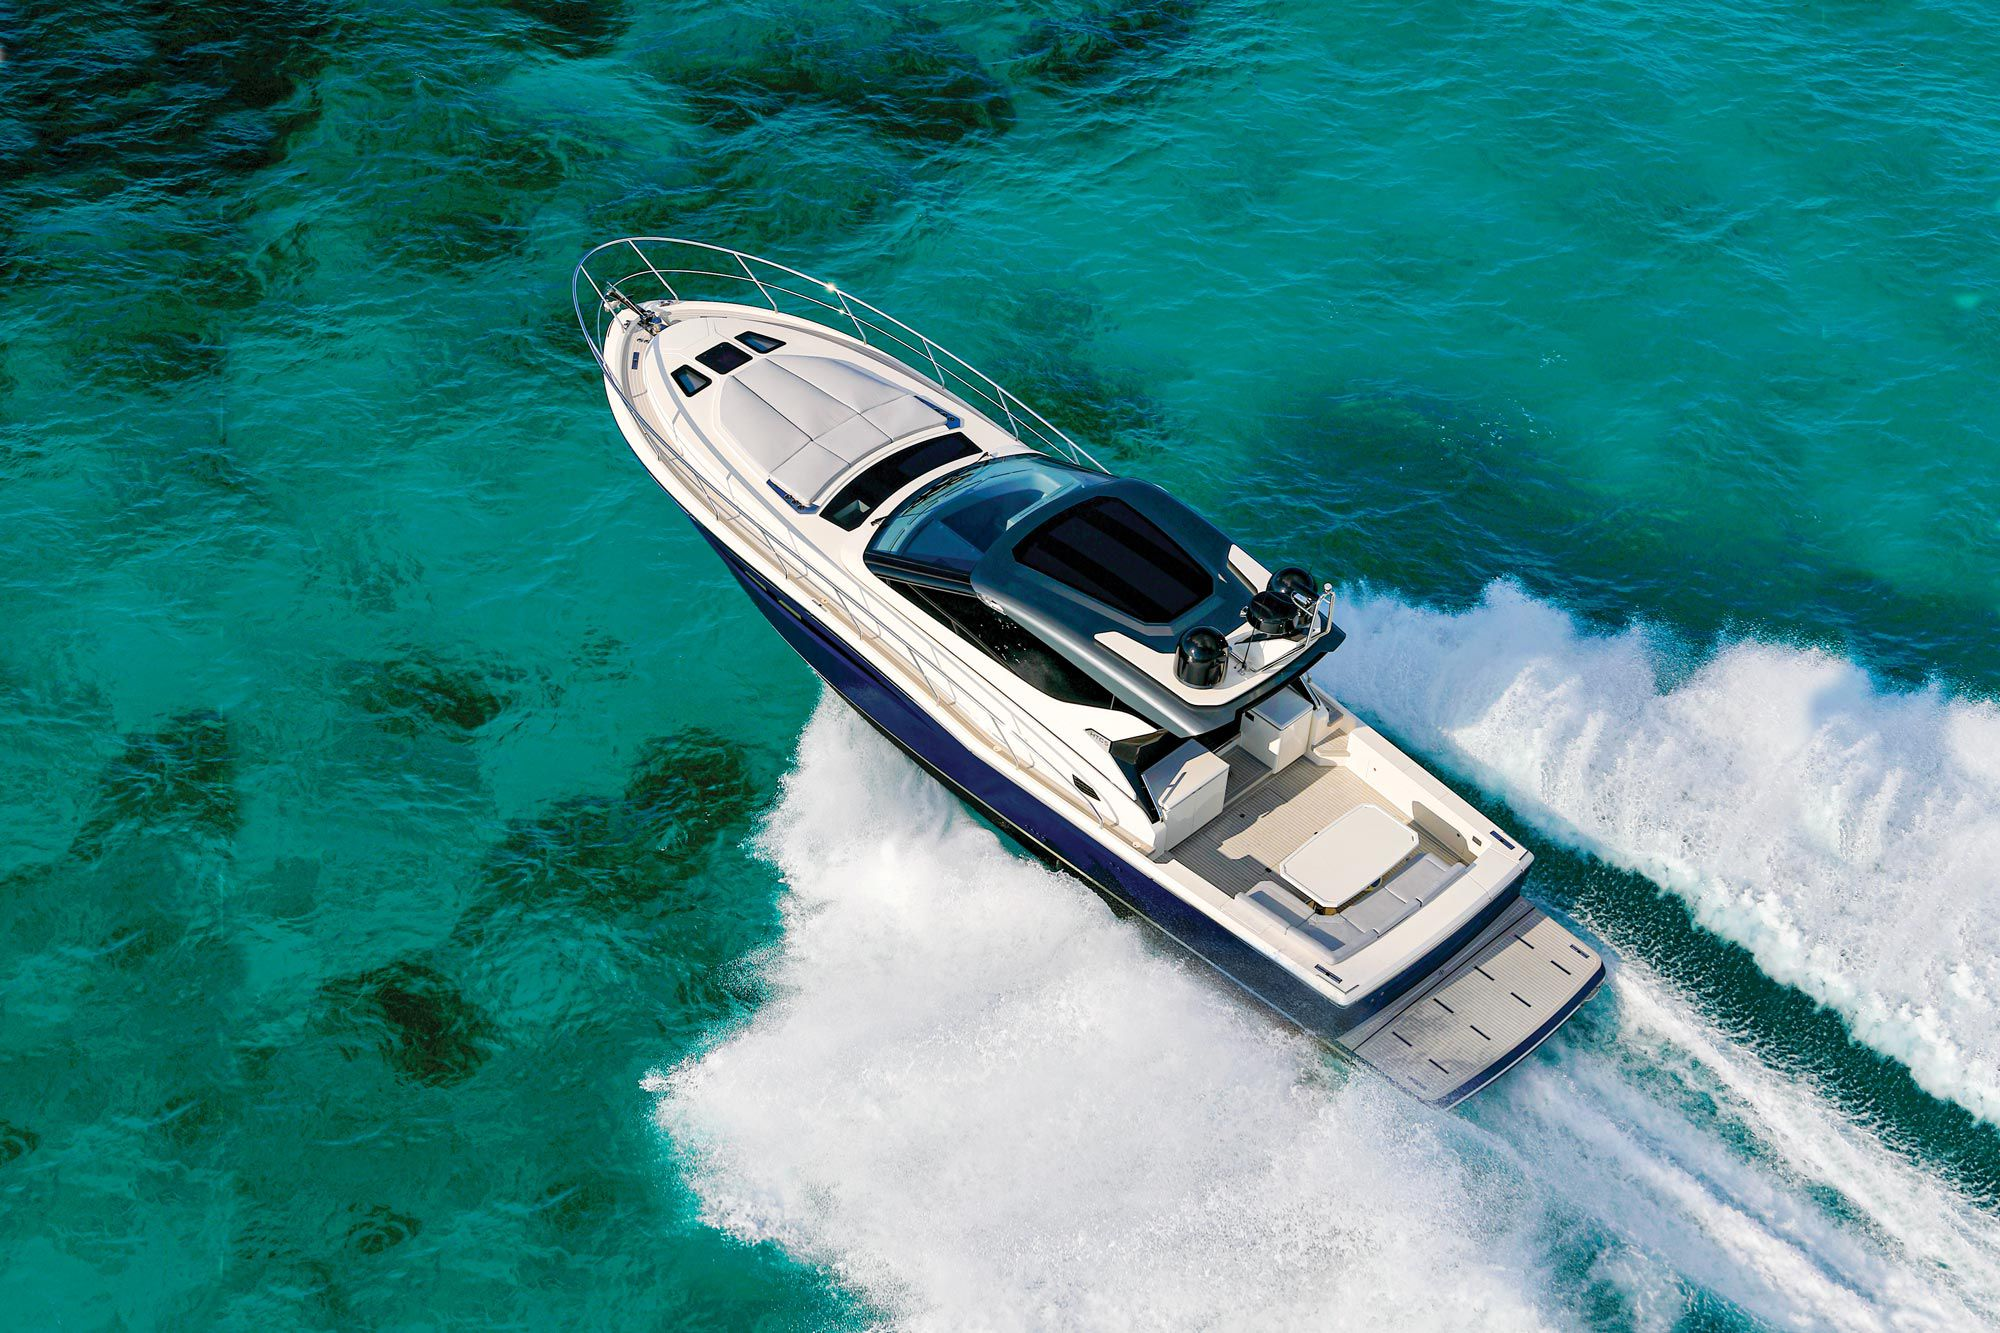 Powered with twin Volvo Penta IPS950 diesels, the Exuma HTC5 topped out at 35.3 knots in sloppy seas.